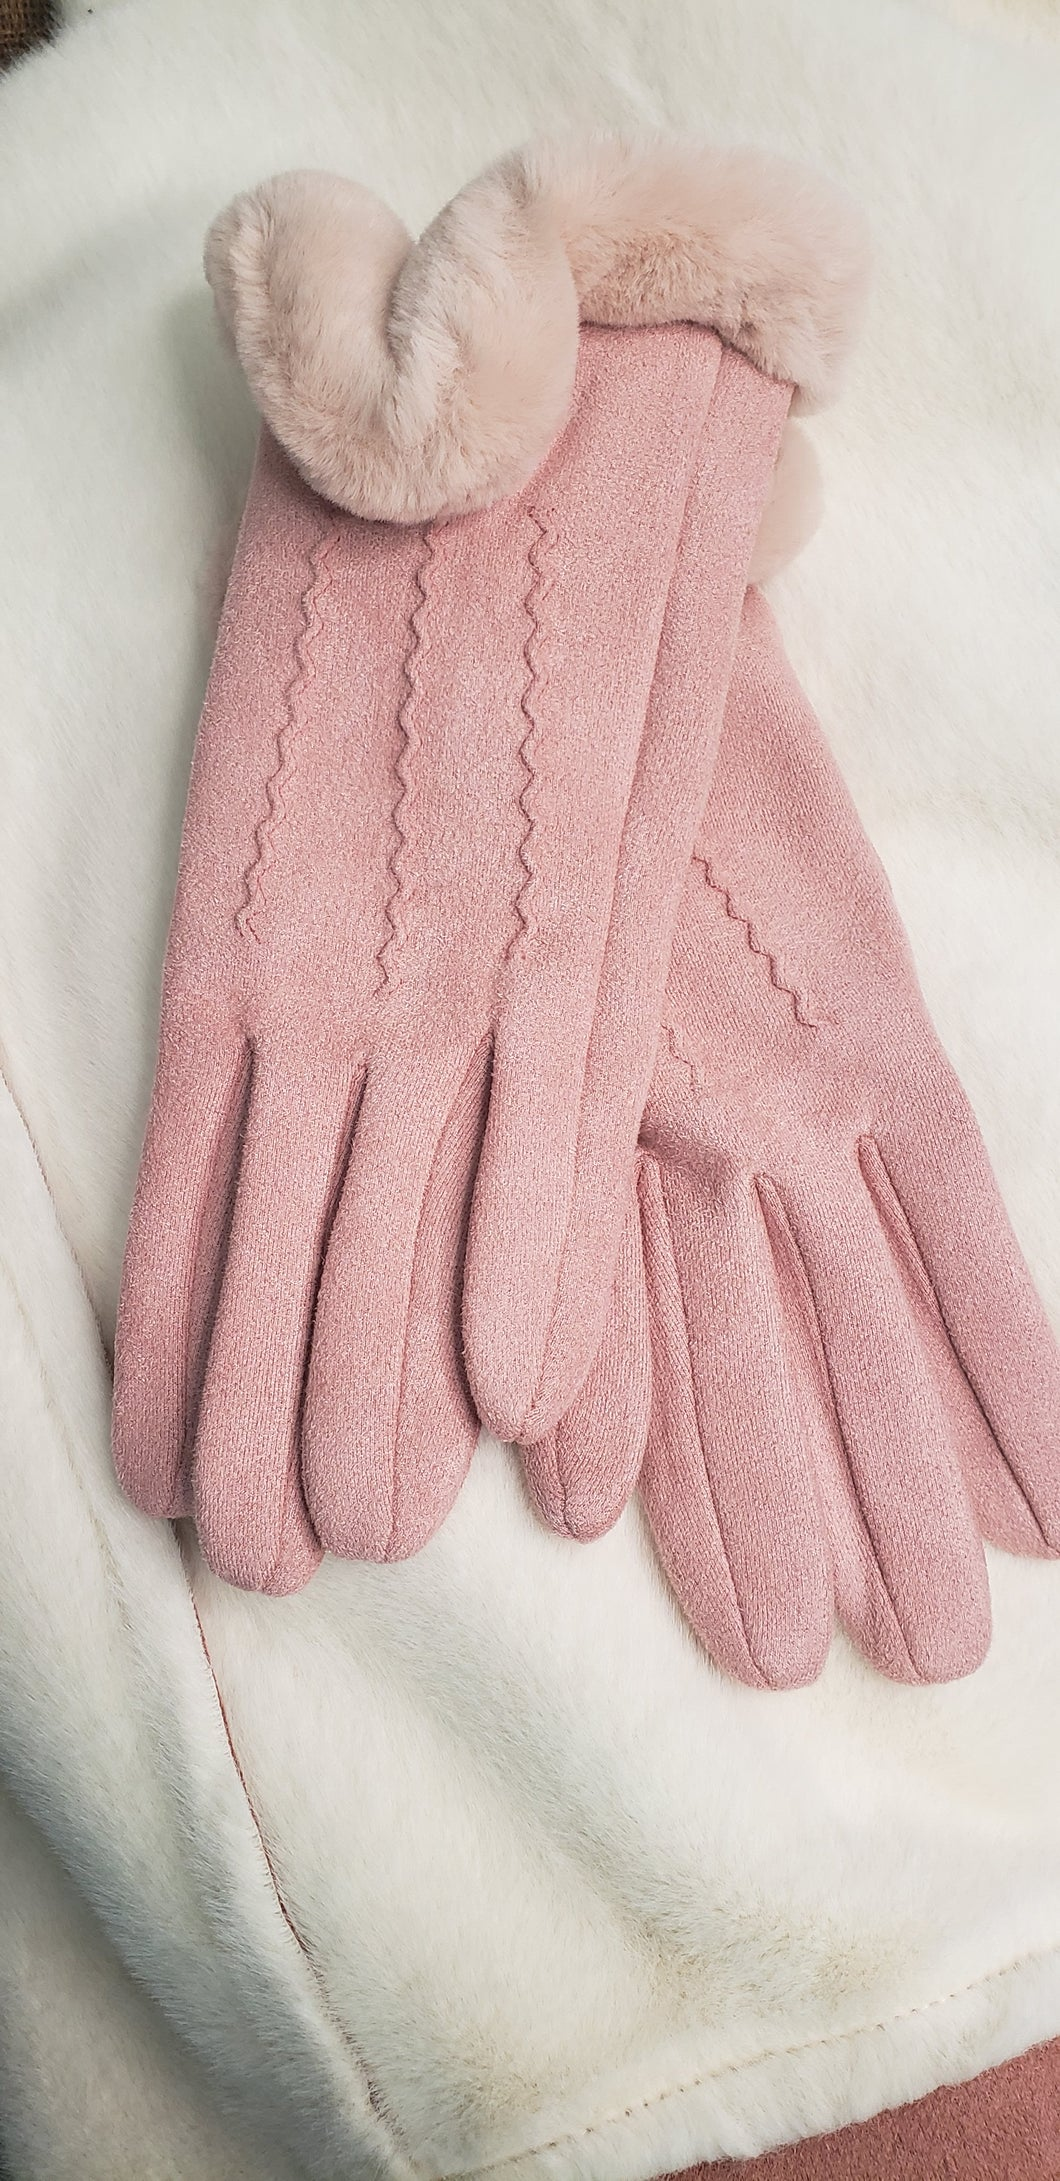 SOLD! Gloves